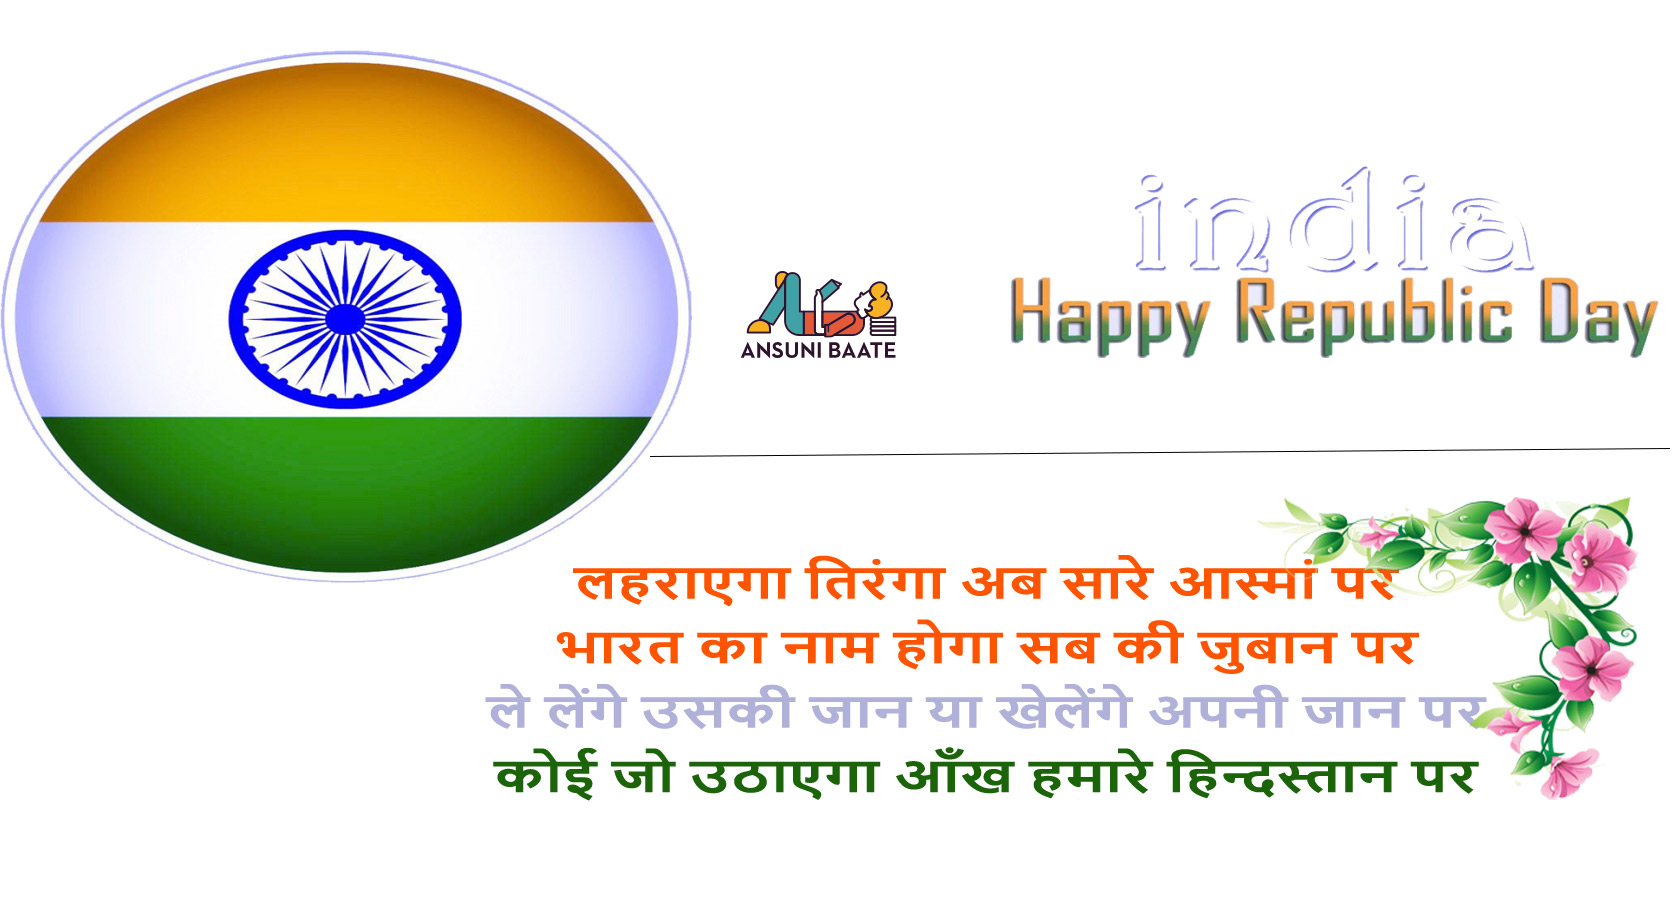 26 जनवरी शायरी इन हिंदी, 26 January Quotes thoughts in hindi - 26 January [Republic day] Shayari With Images In Hindi